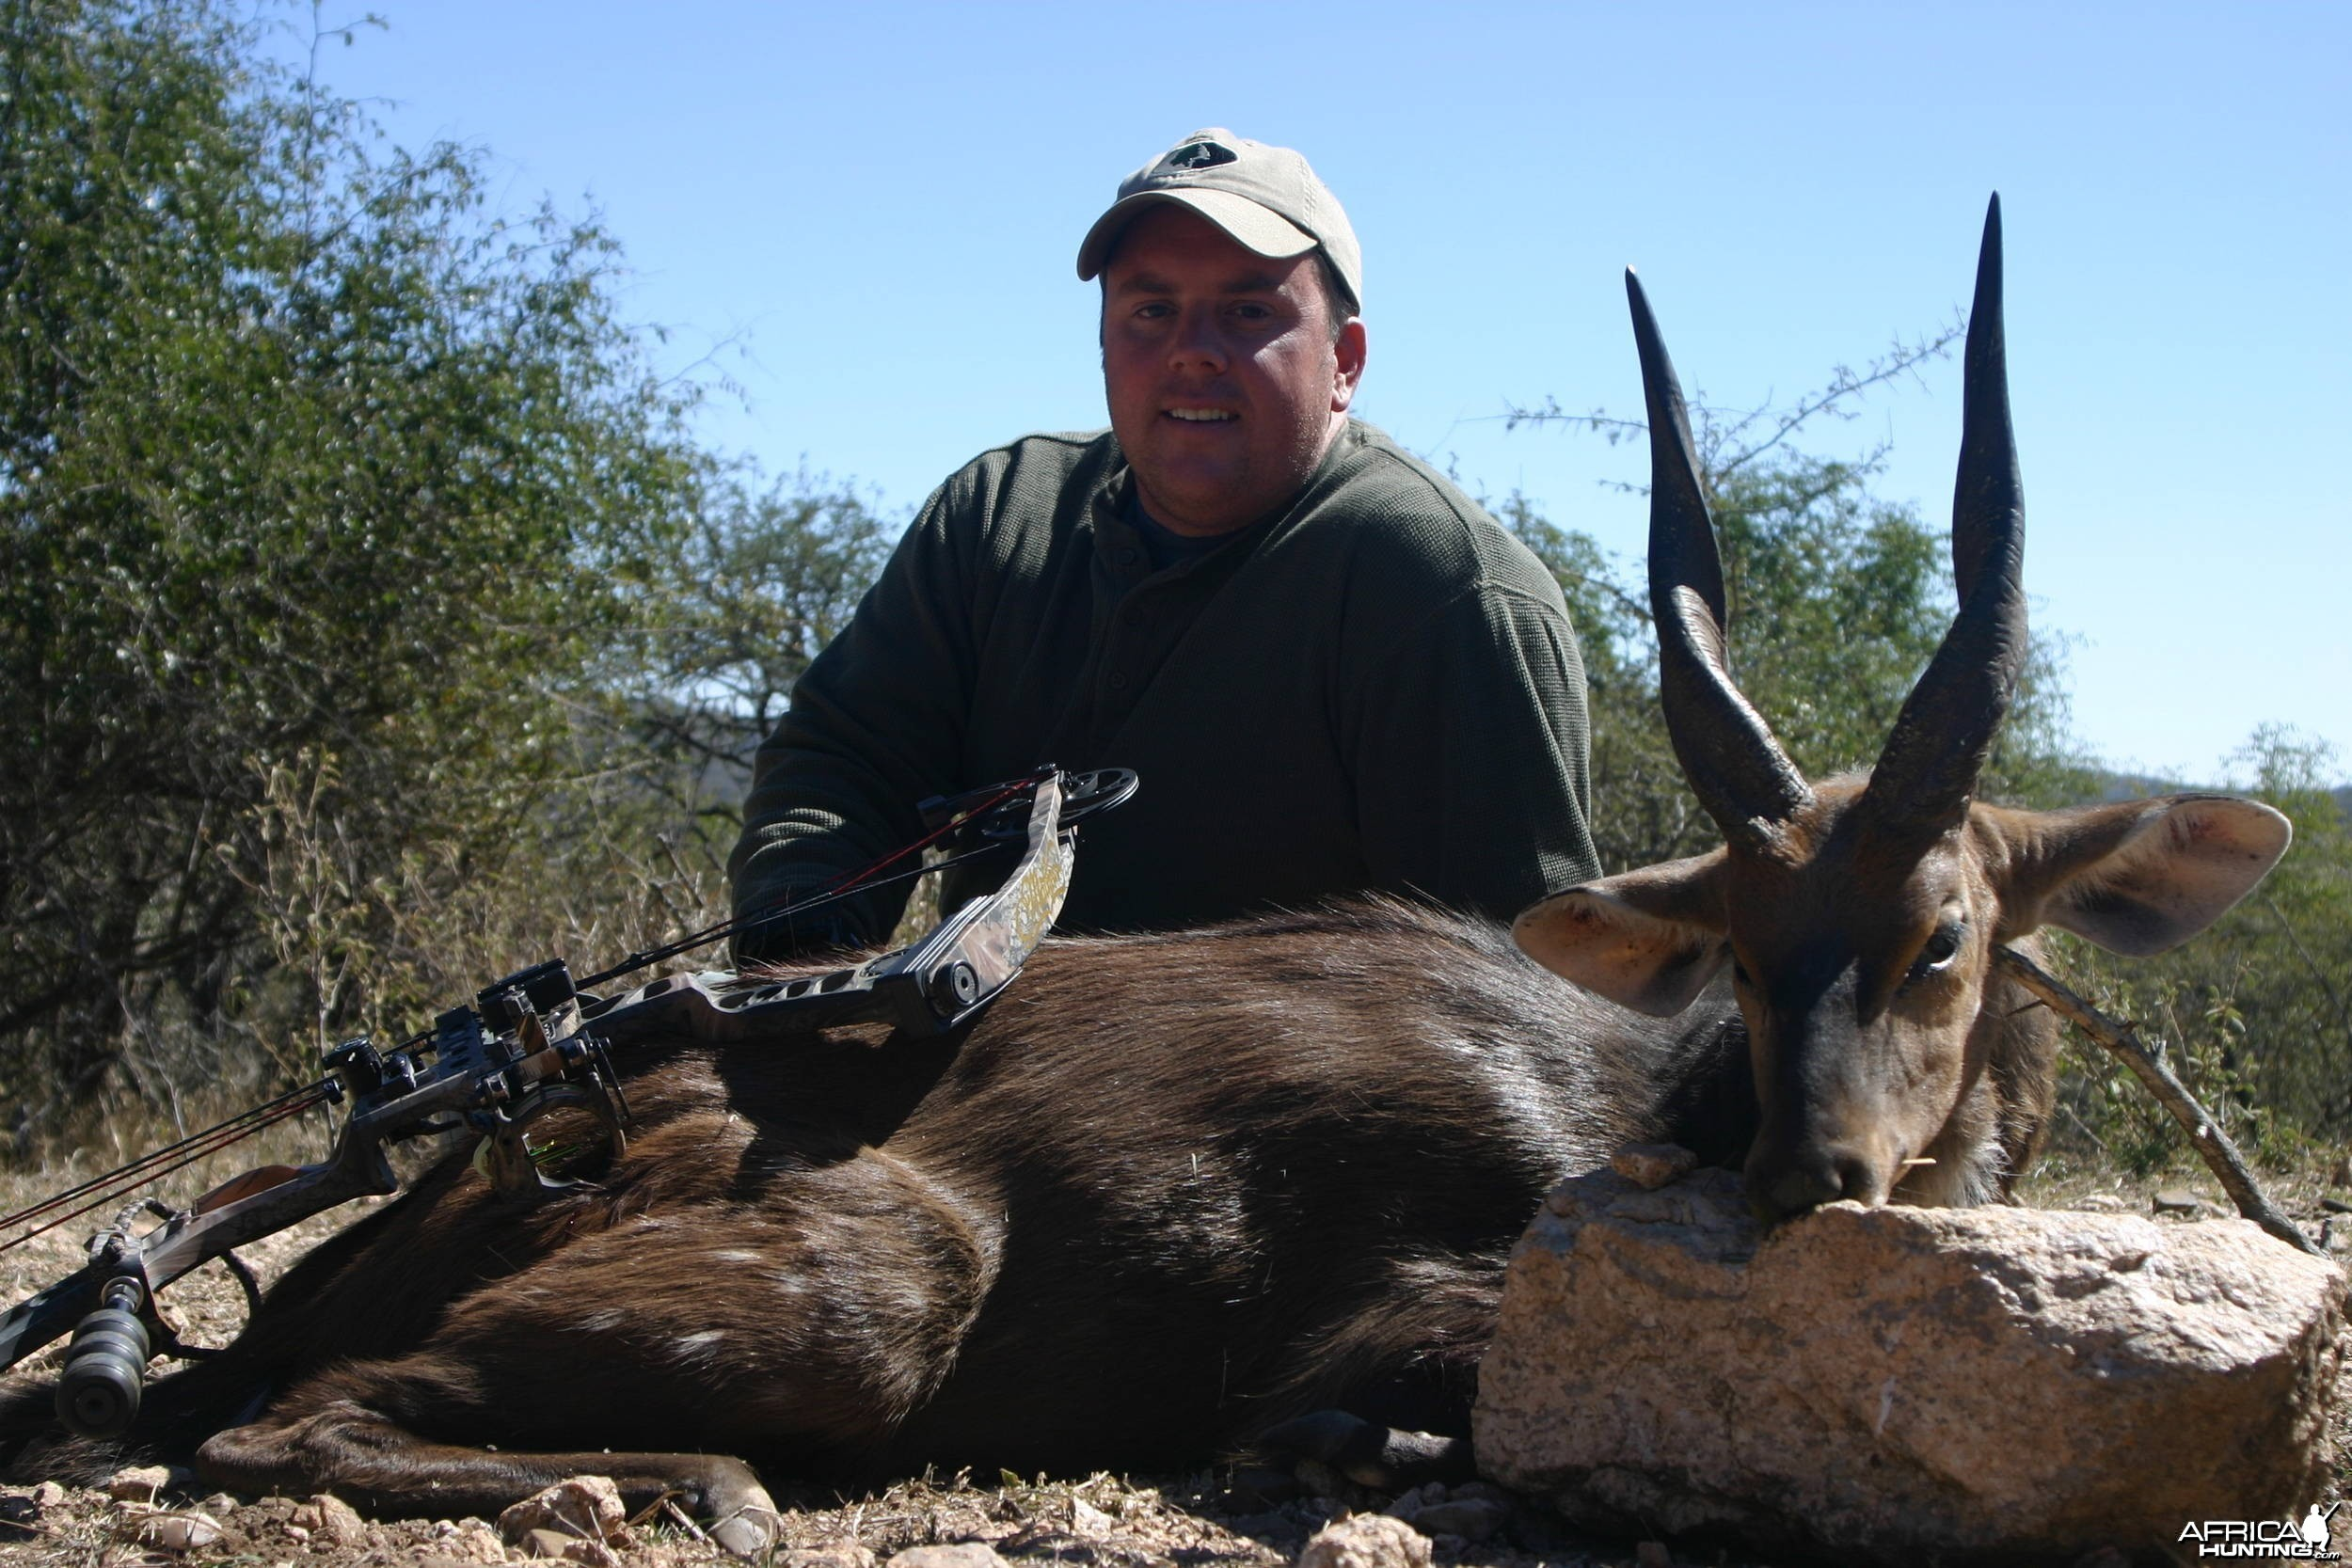 Bushbuck - First african animal